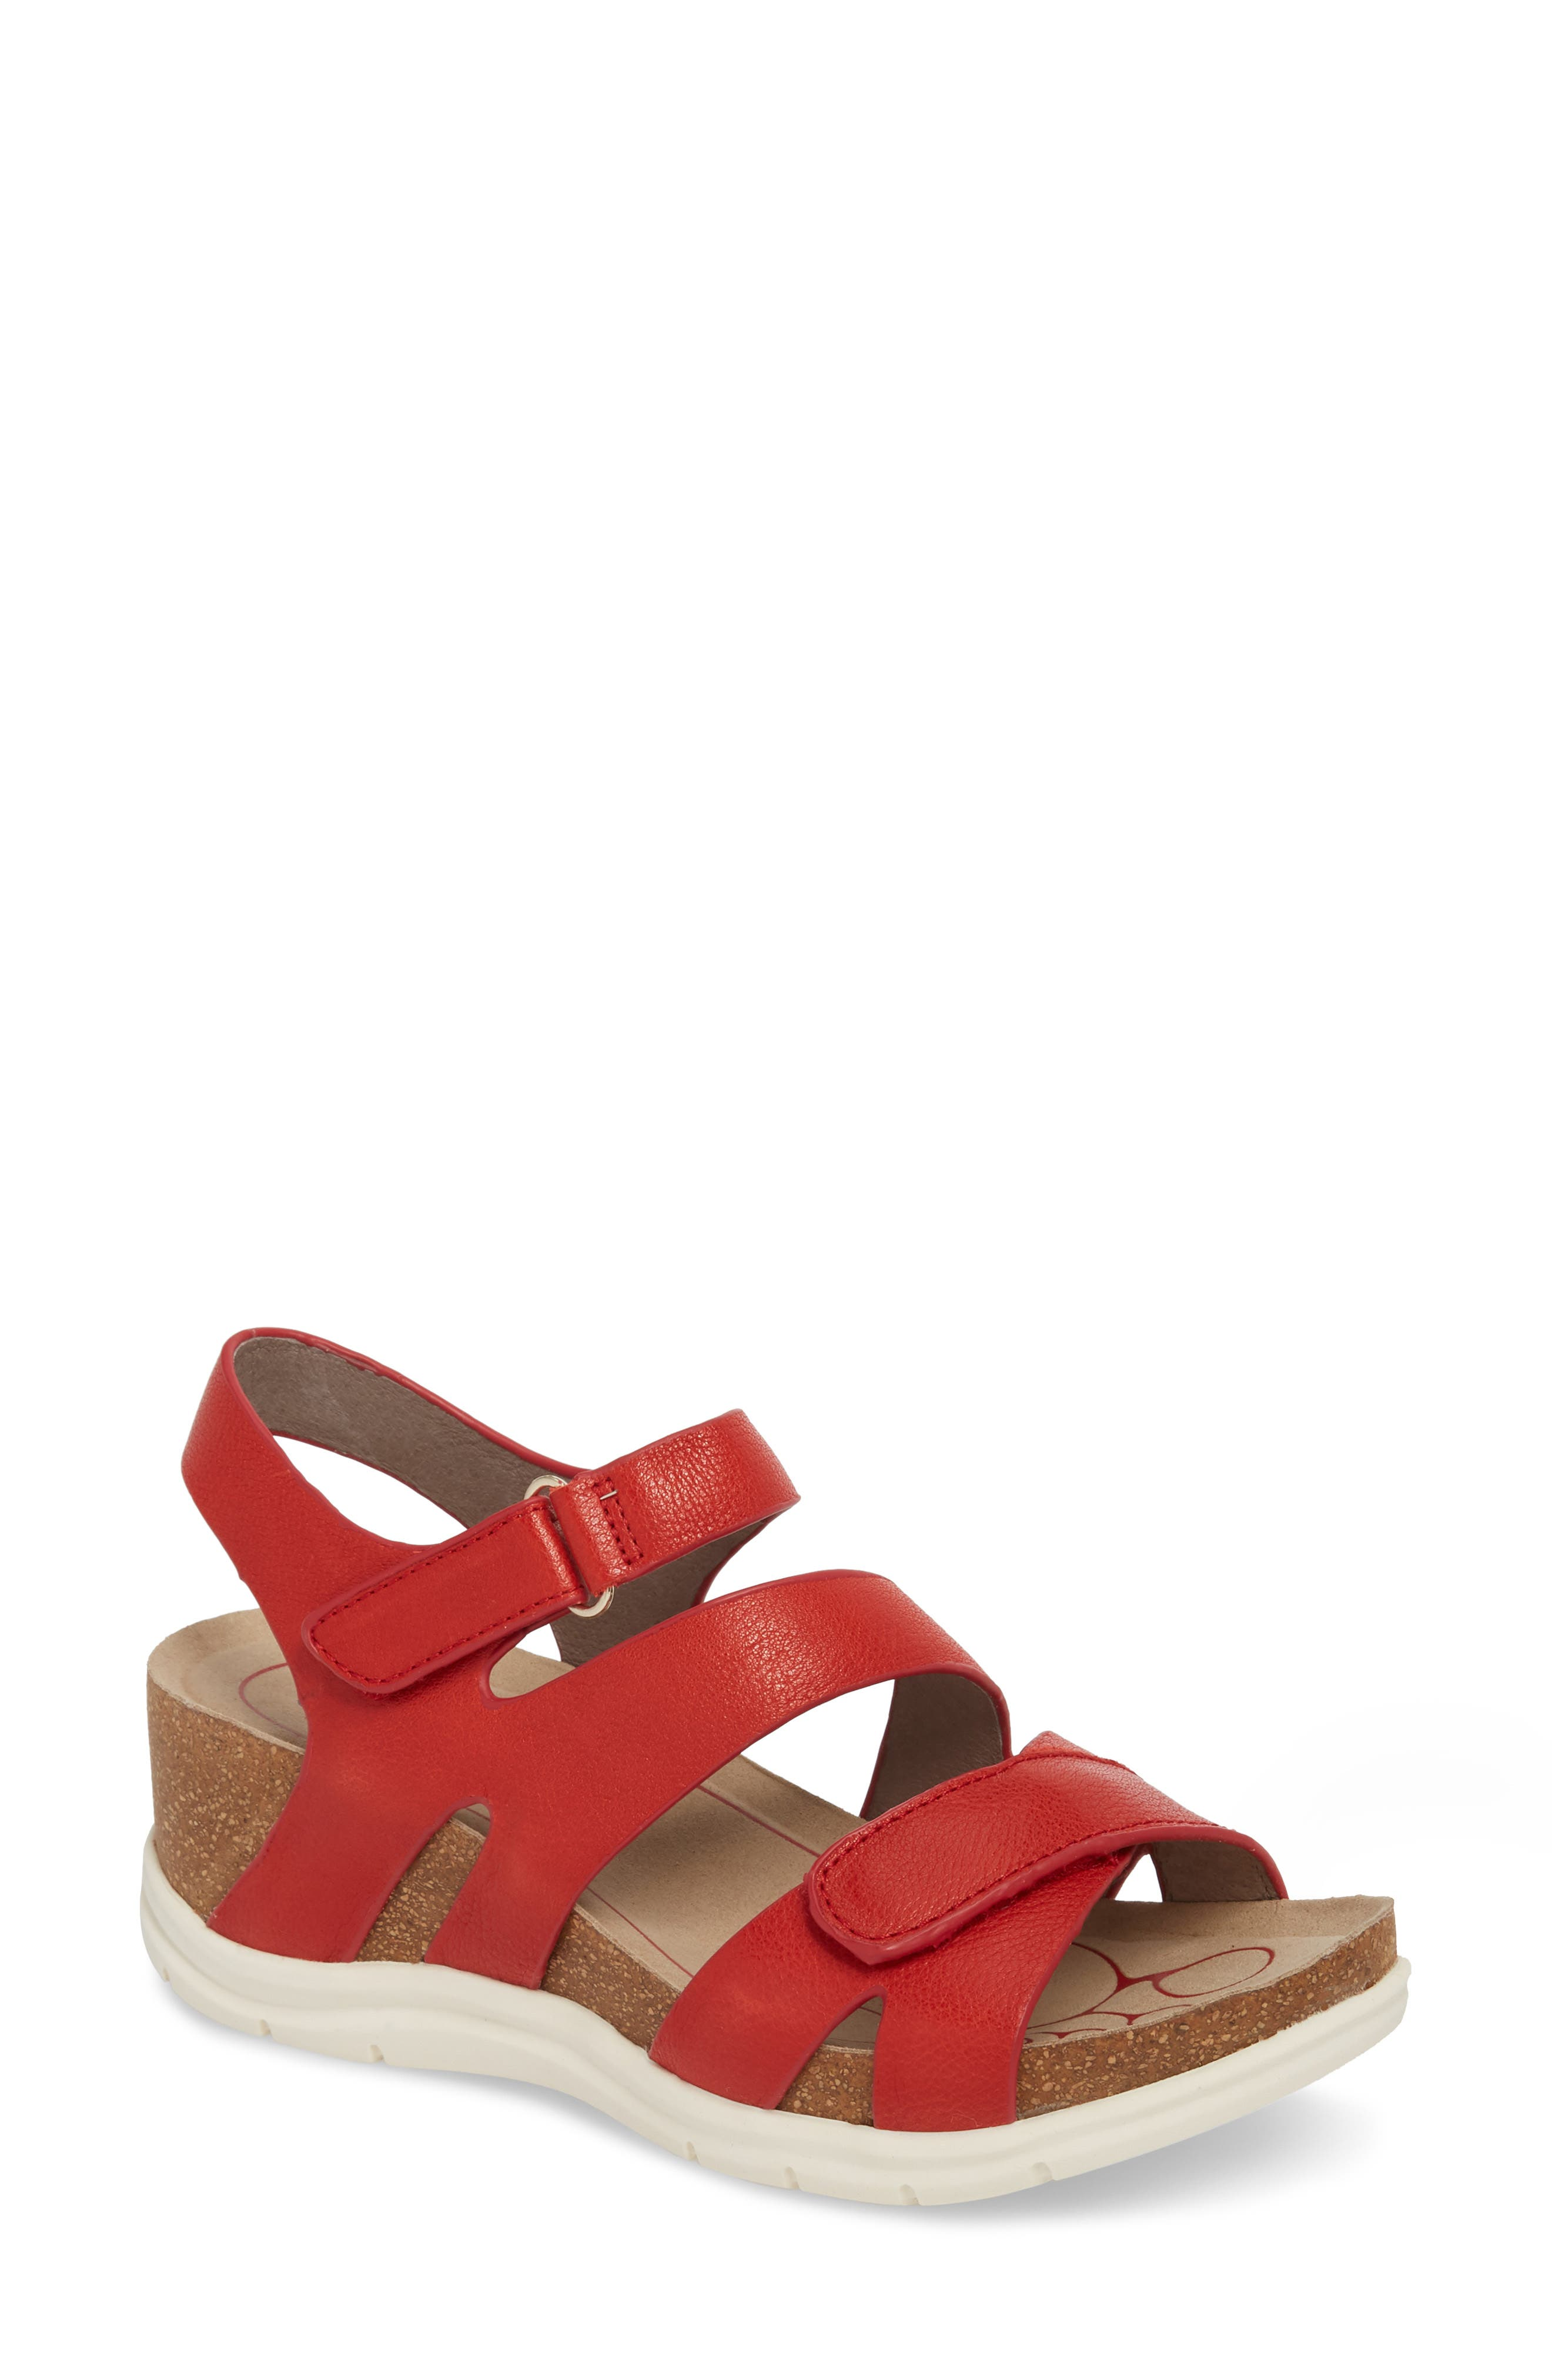 Passion Wedge Sandal,                             Main thumbnail 1, color,                             FIRE RED LEATHER